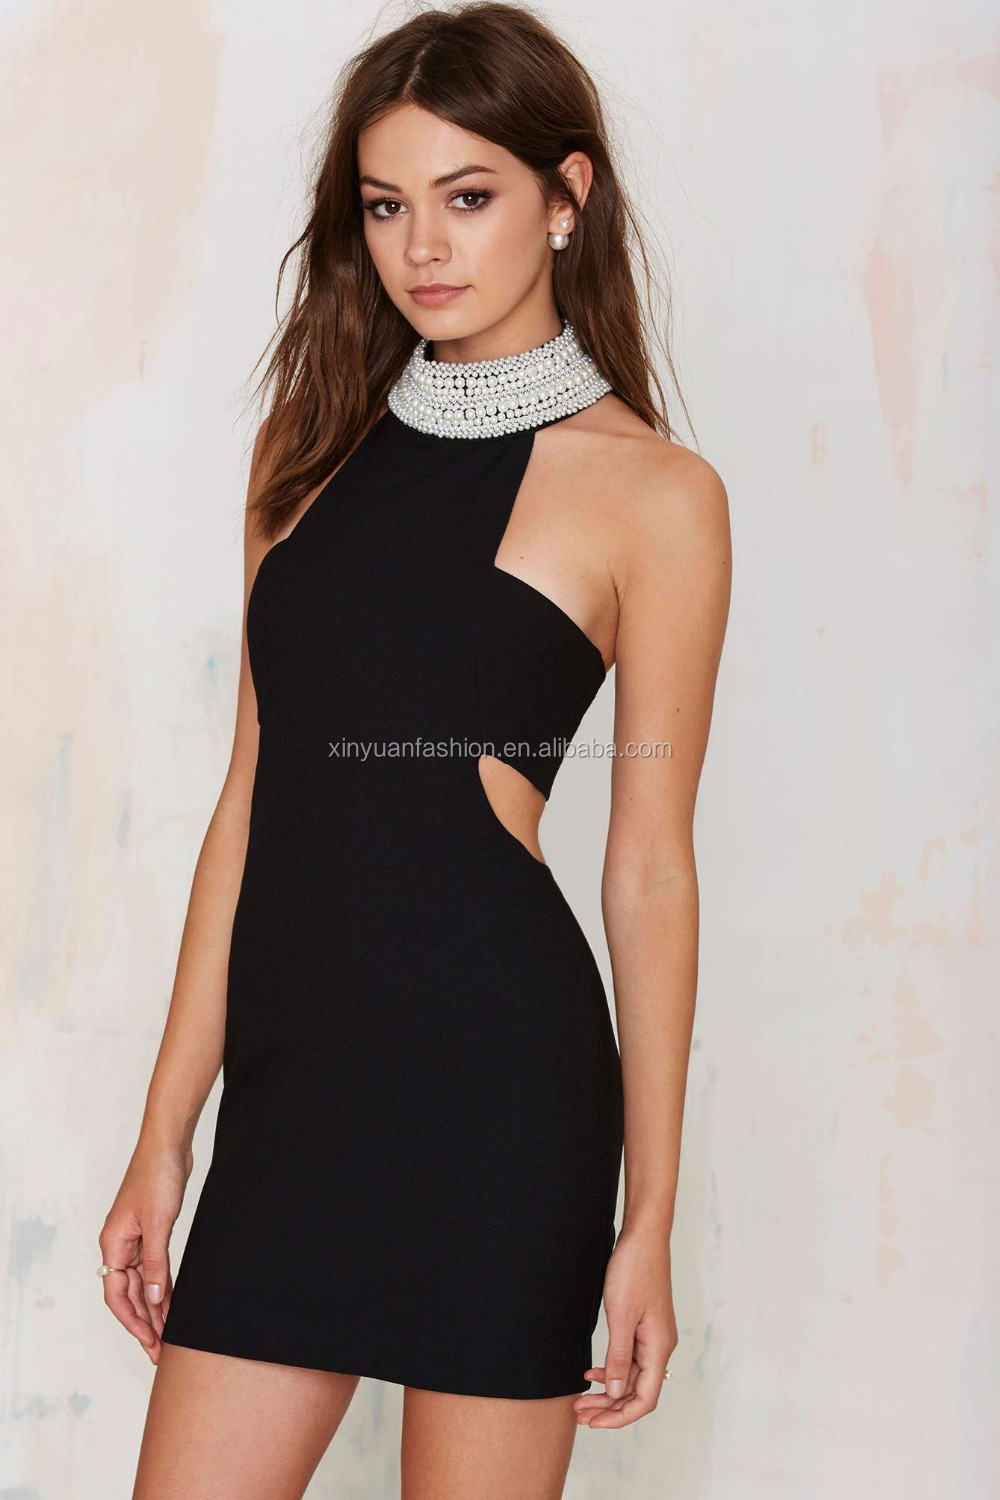 Super party dress sexy Ladies Off Shoulder O-Neck With Beading Neck Trim Party Dresses for Women